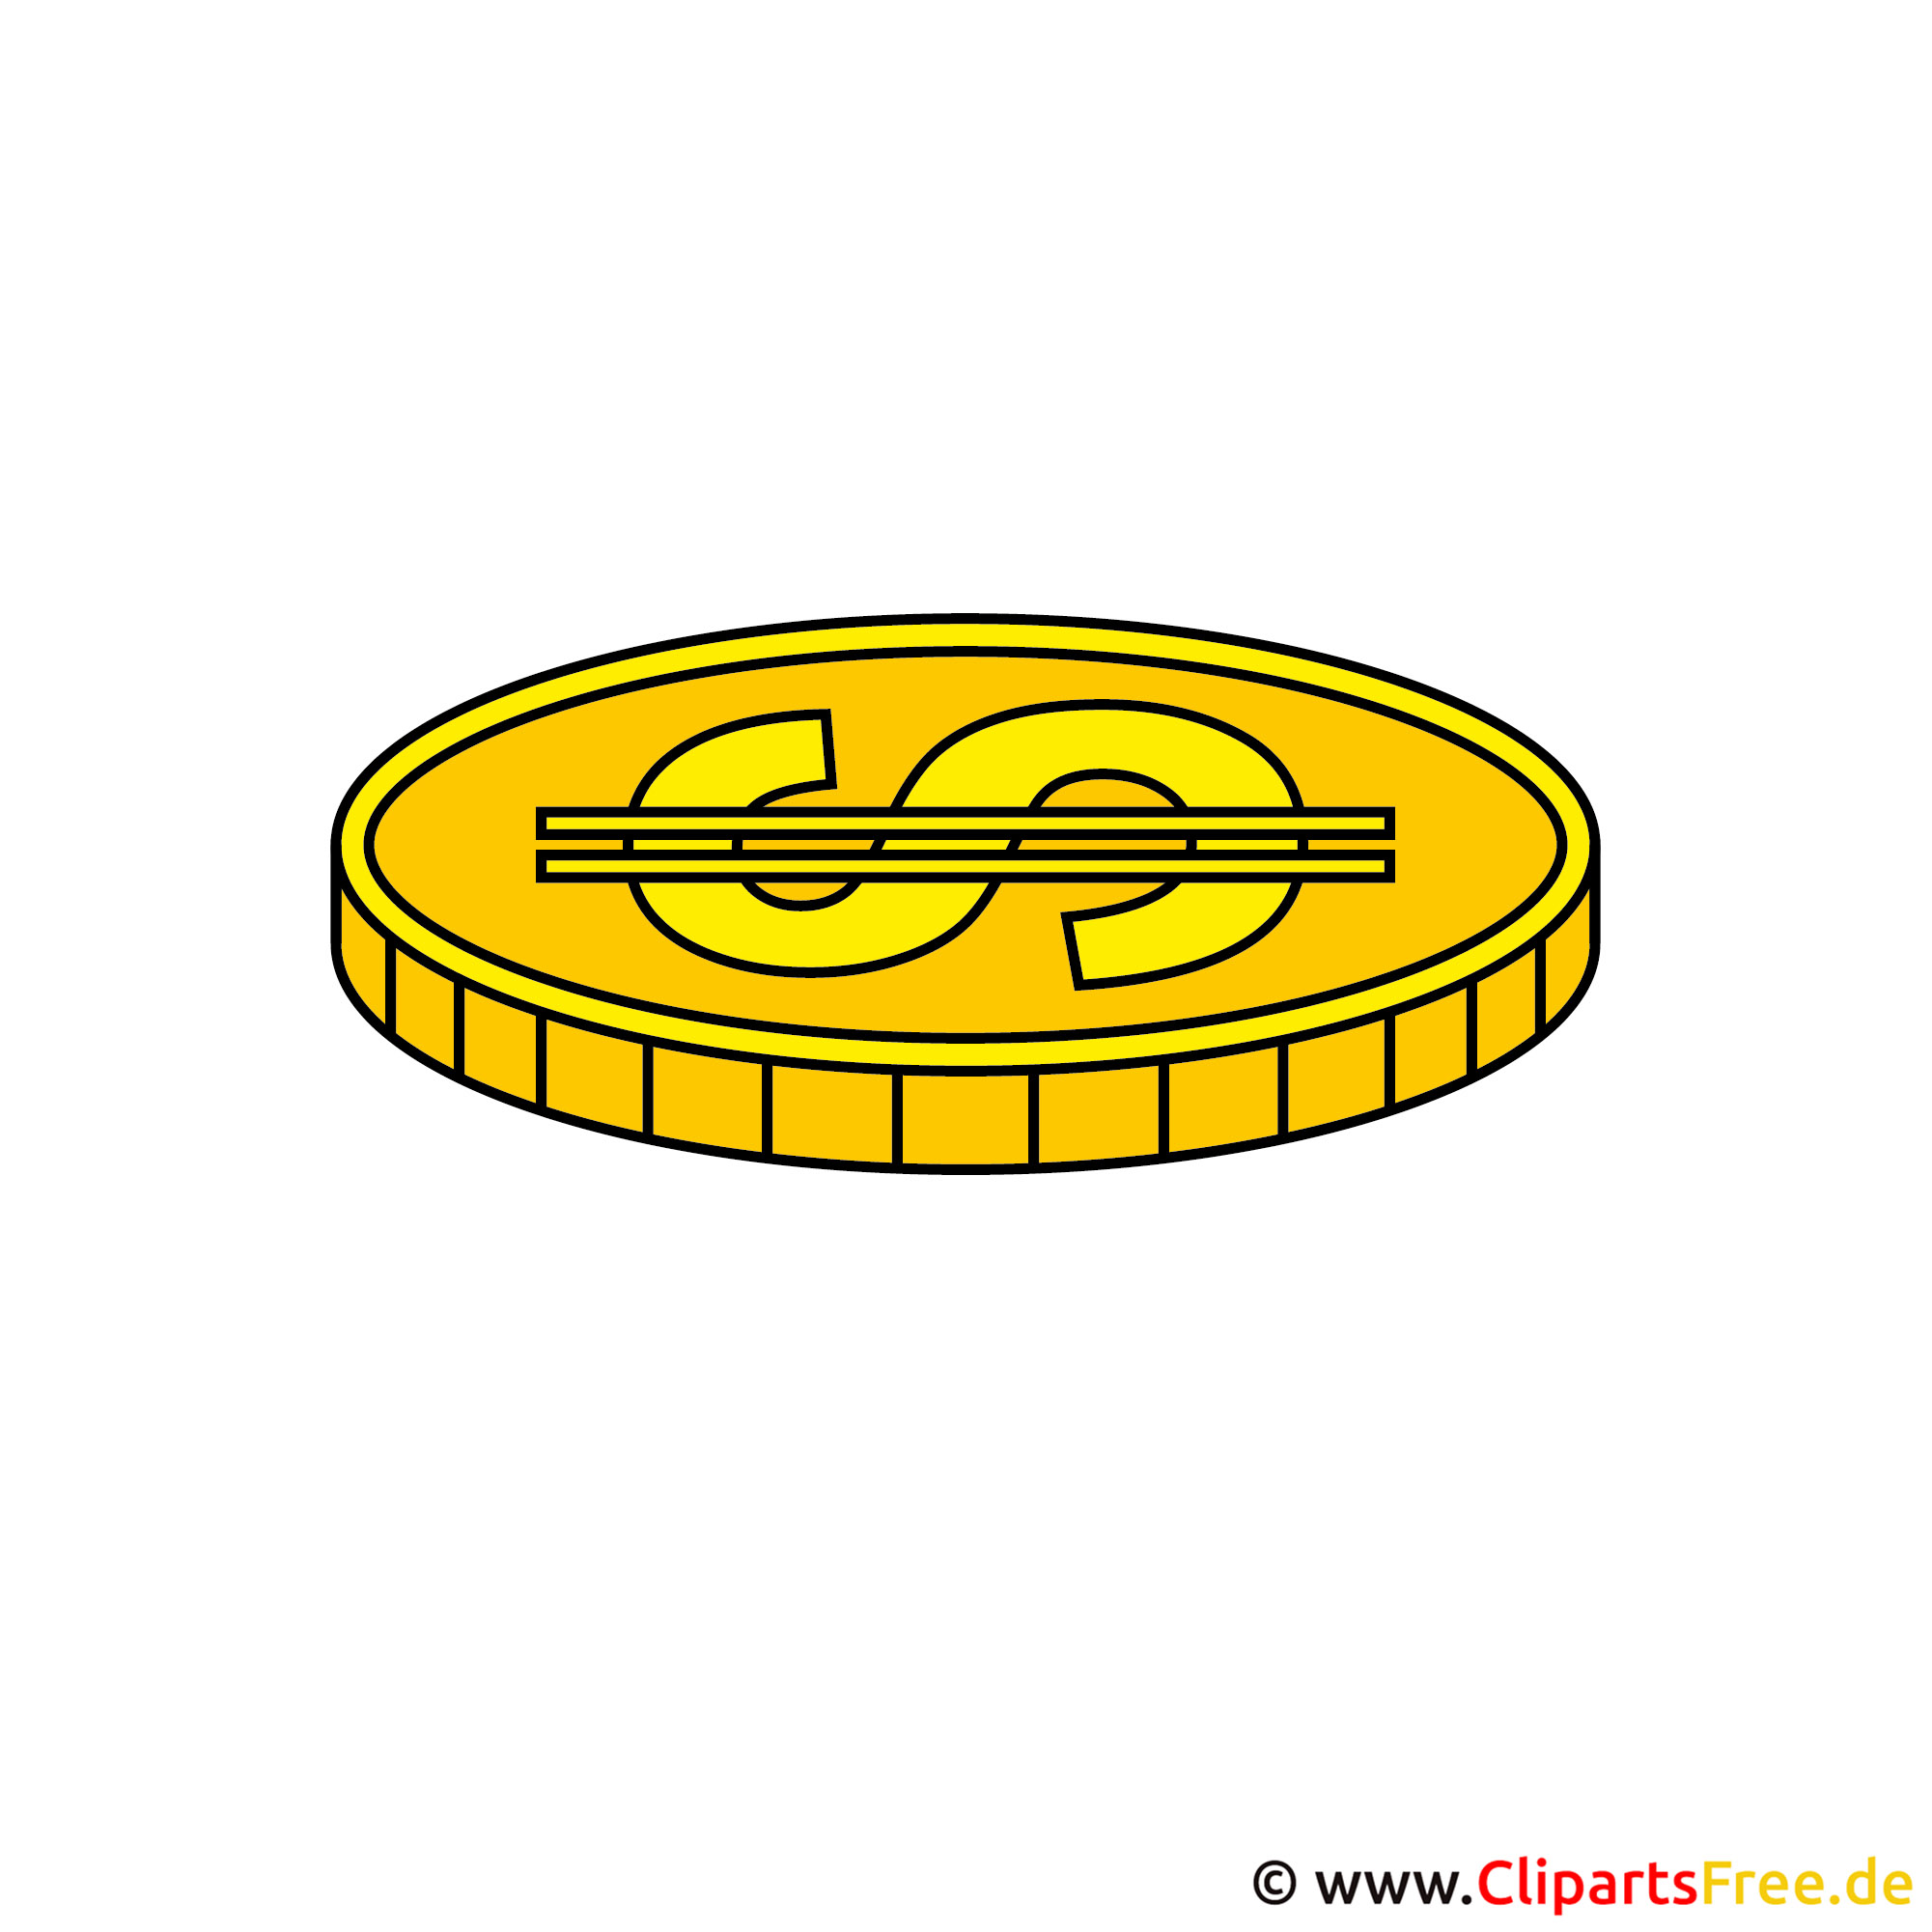 Gold - Münze Clipart gratis